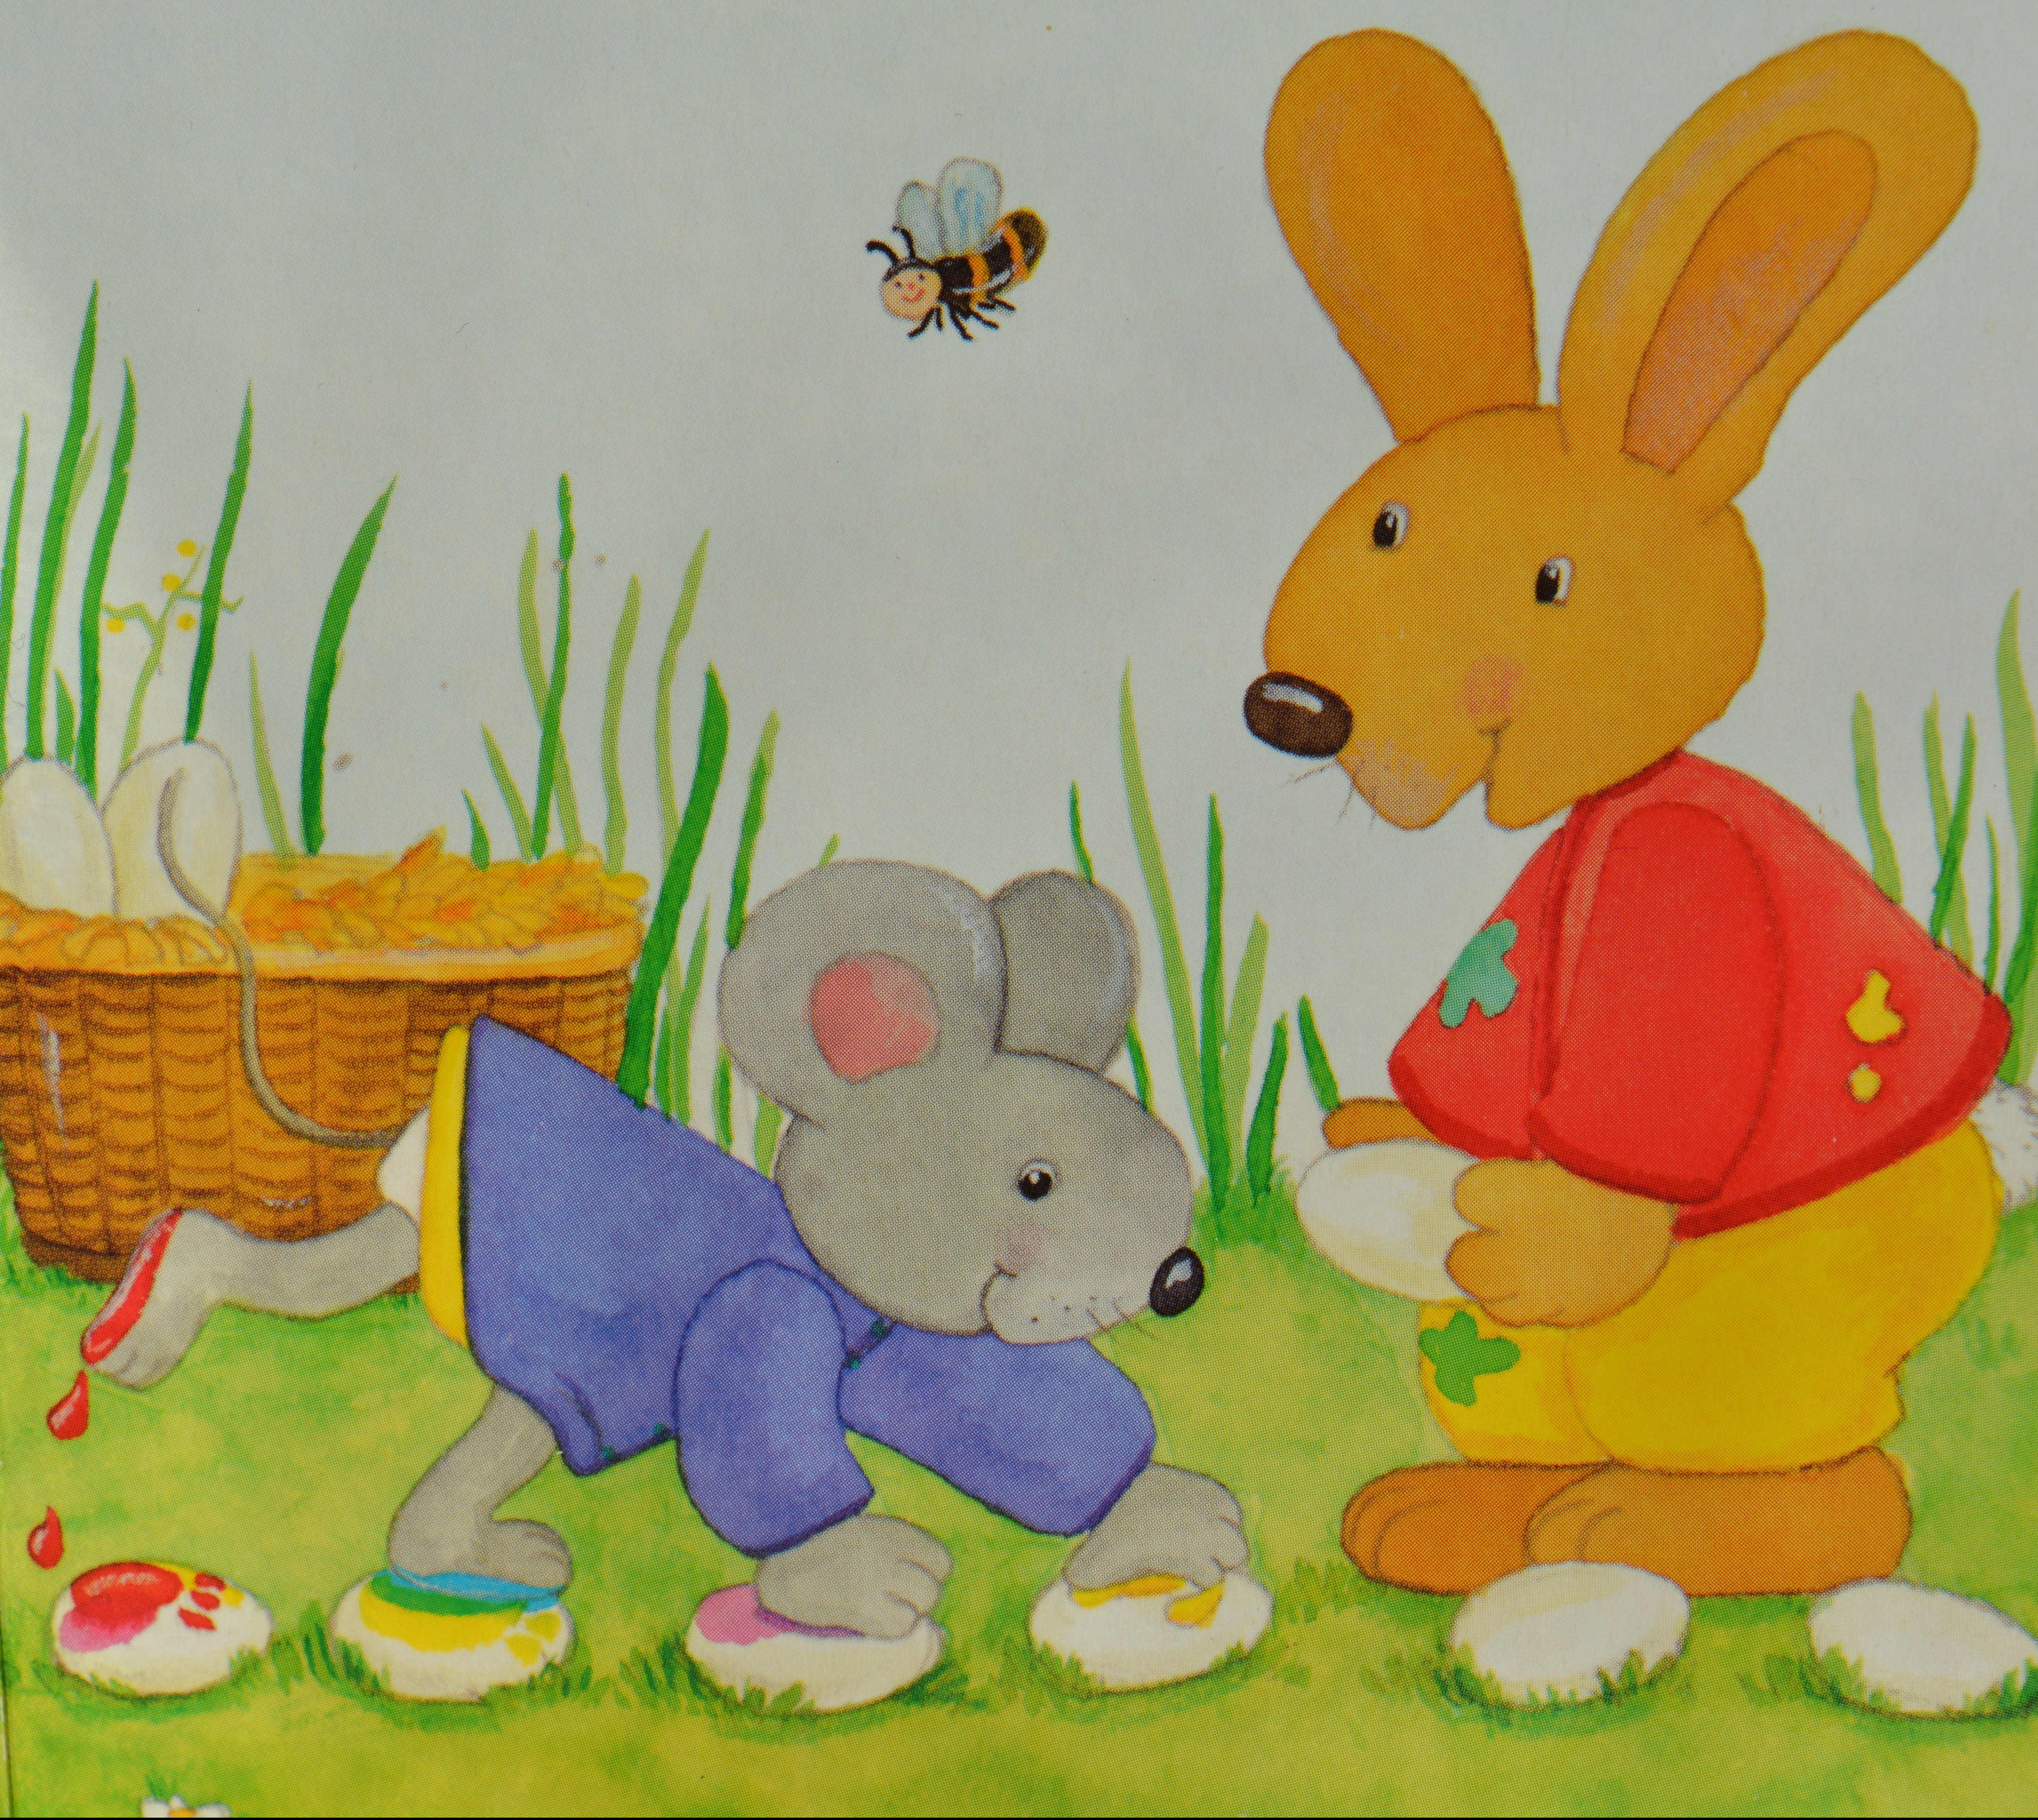 Frohe Ostern, kleiner Hase! - Kinderchaos - Familienblog